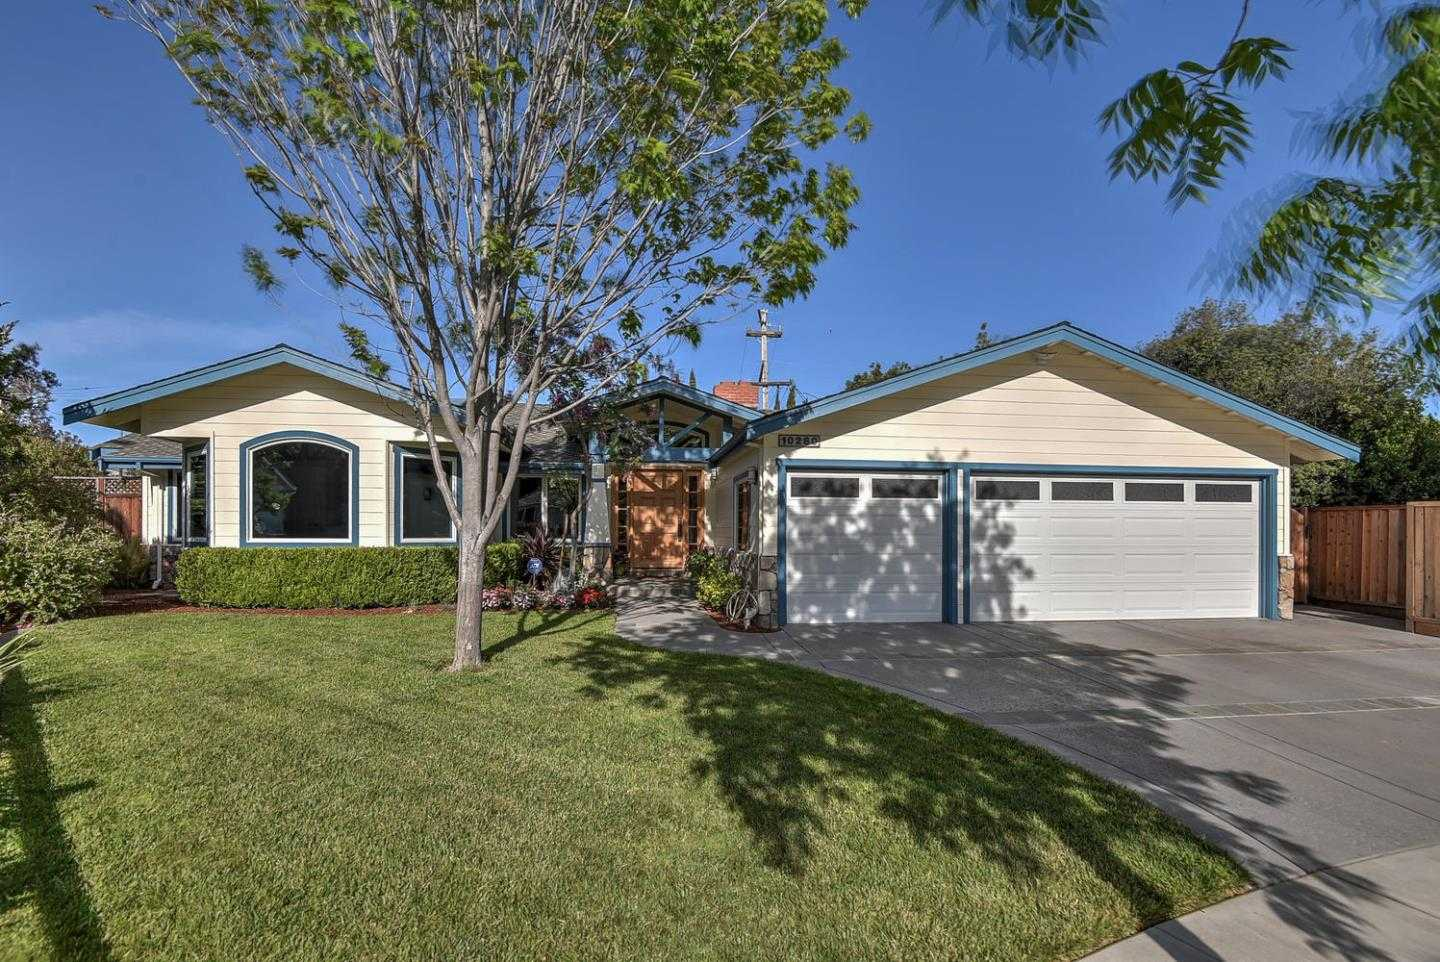 $2,488,000 - 4Br/2Ba -  for Sale in Cupertino